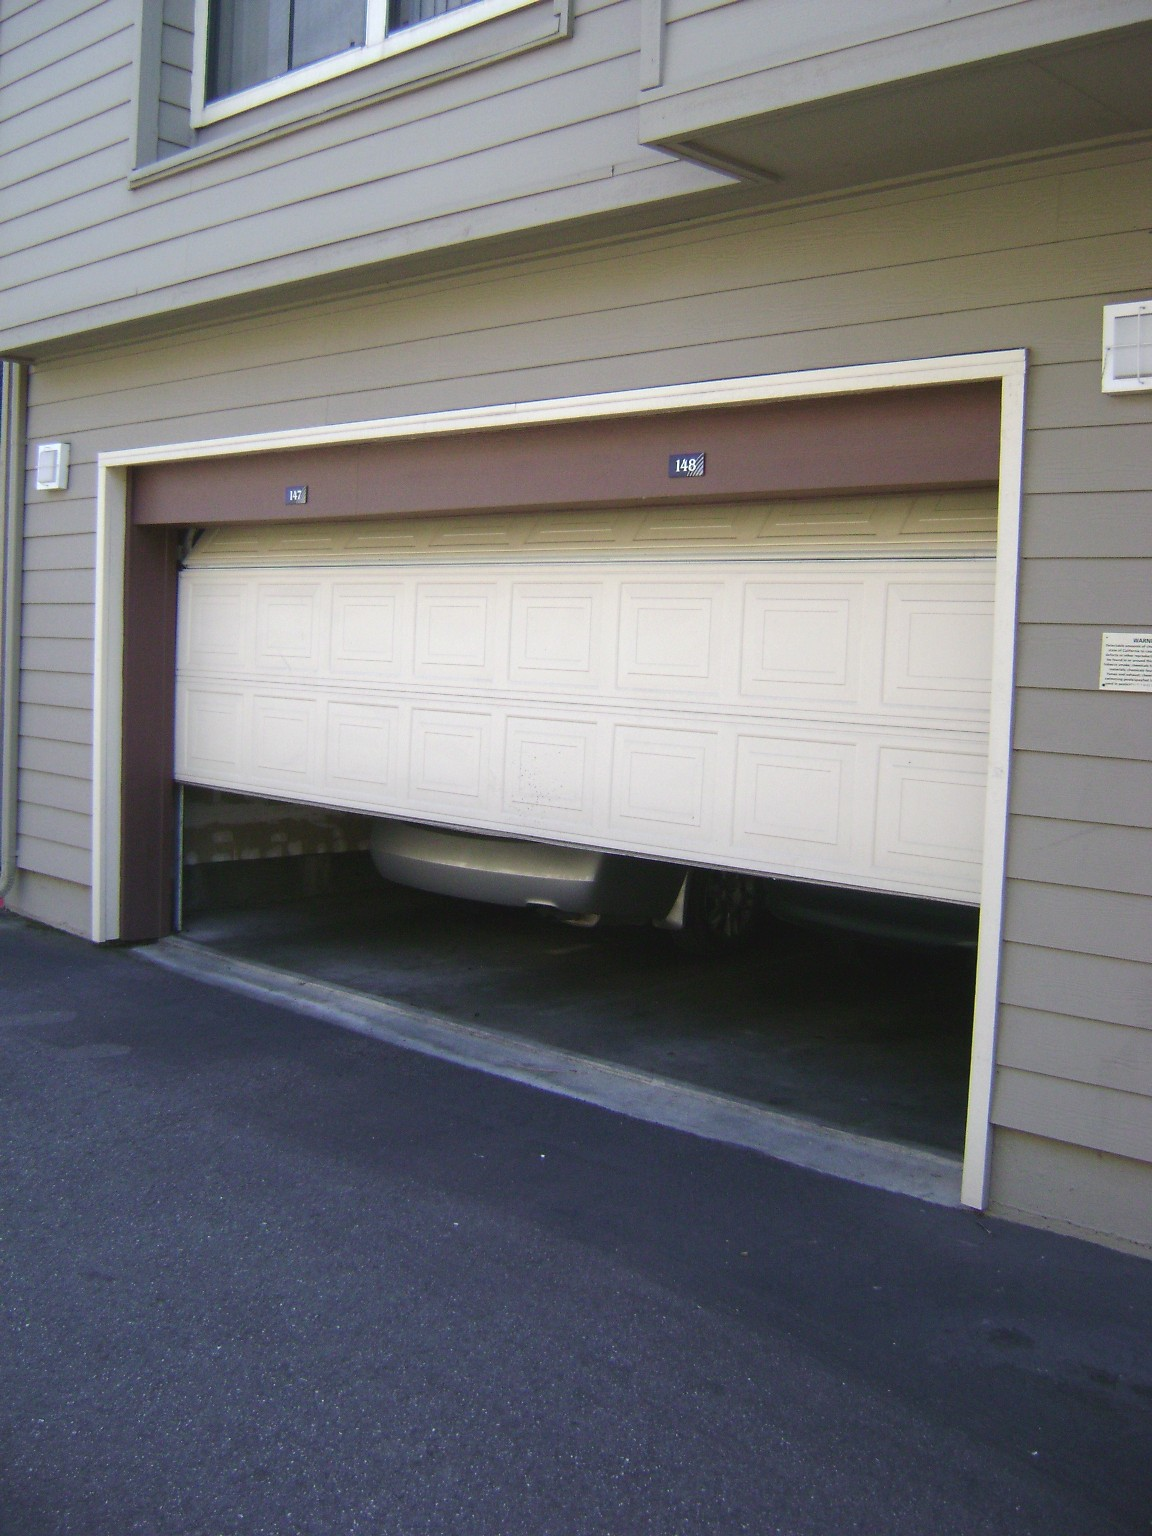 Normal height of garage doors - Normal Height Of Garage Doors 42